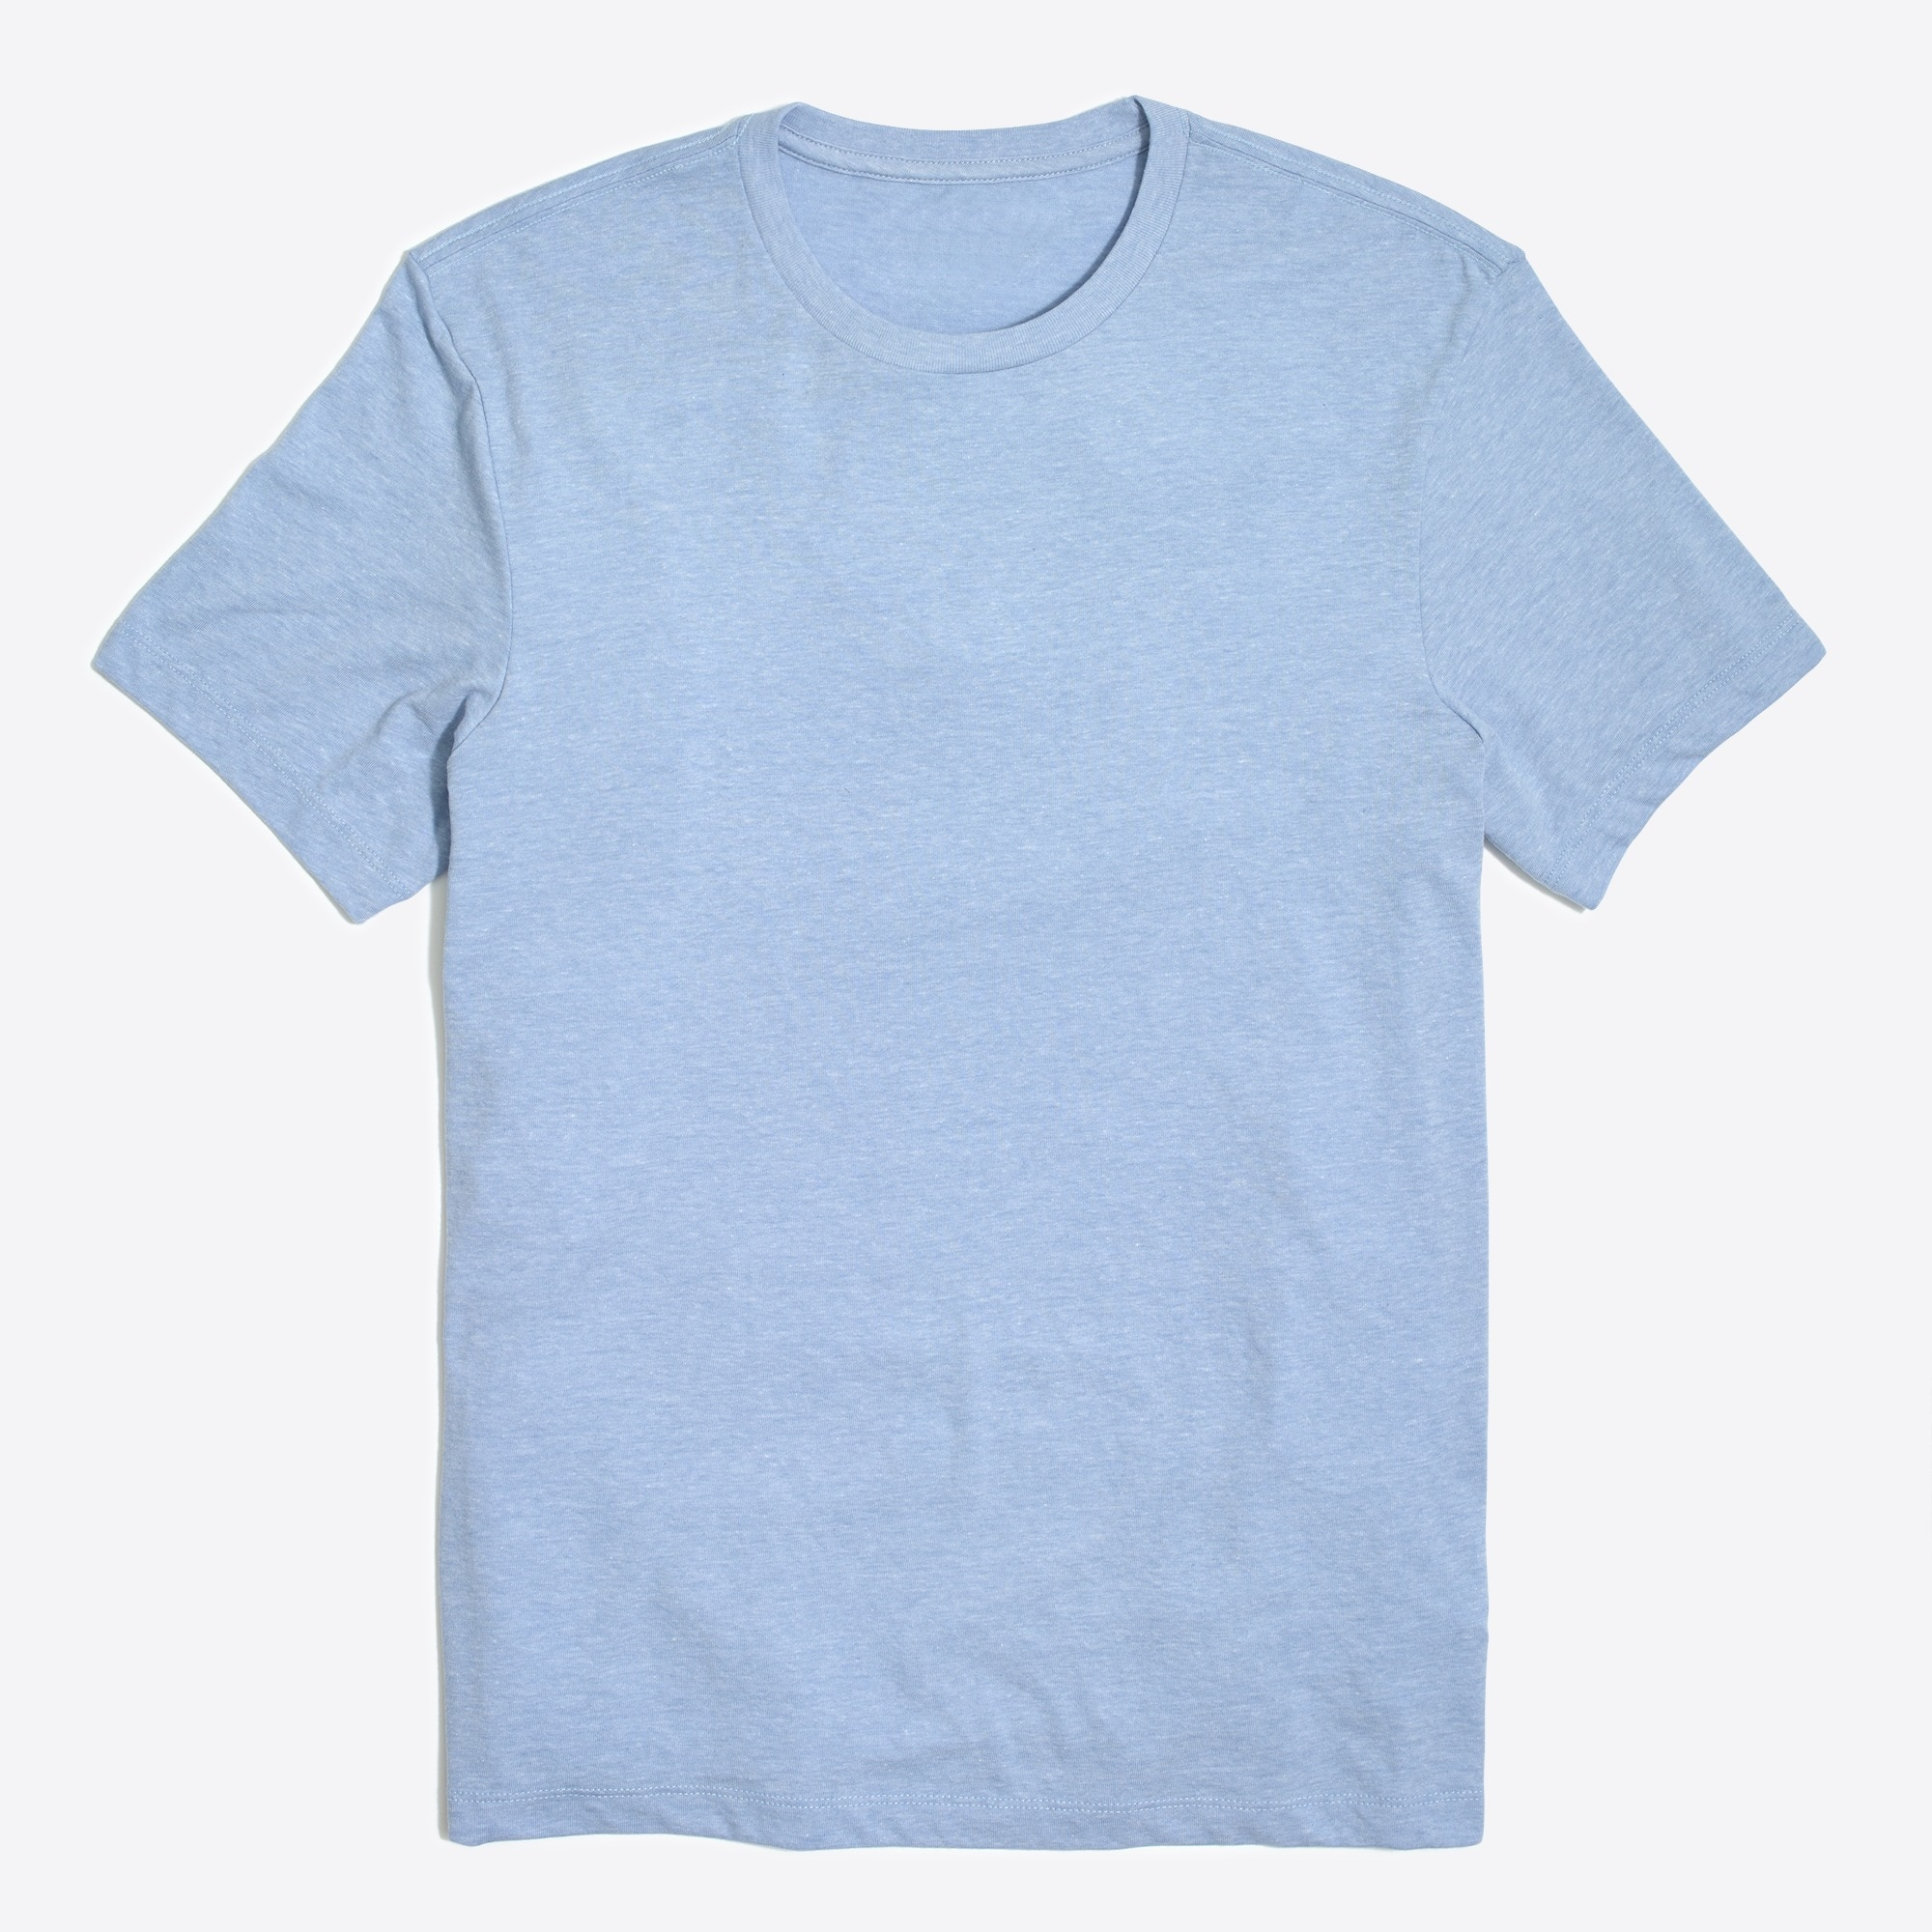 factory mens J.Crew Mercantile heathered Broken-in T-shirt